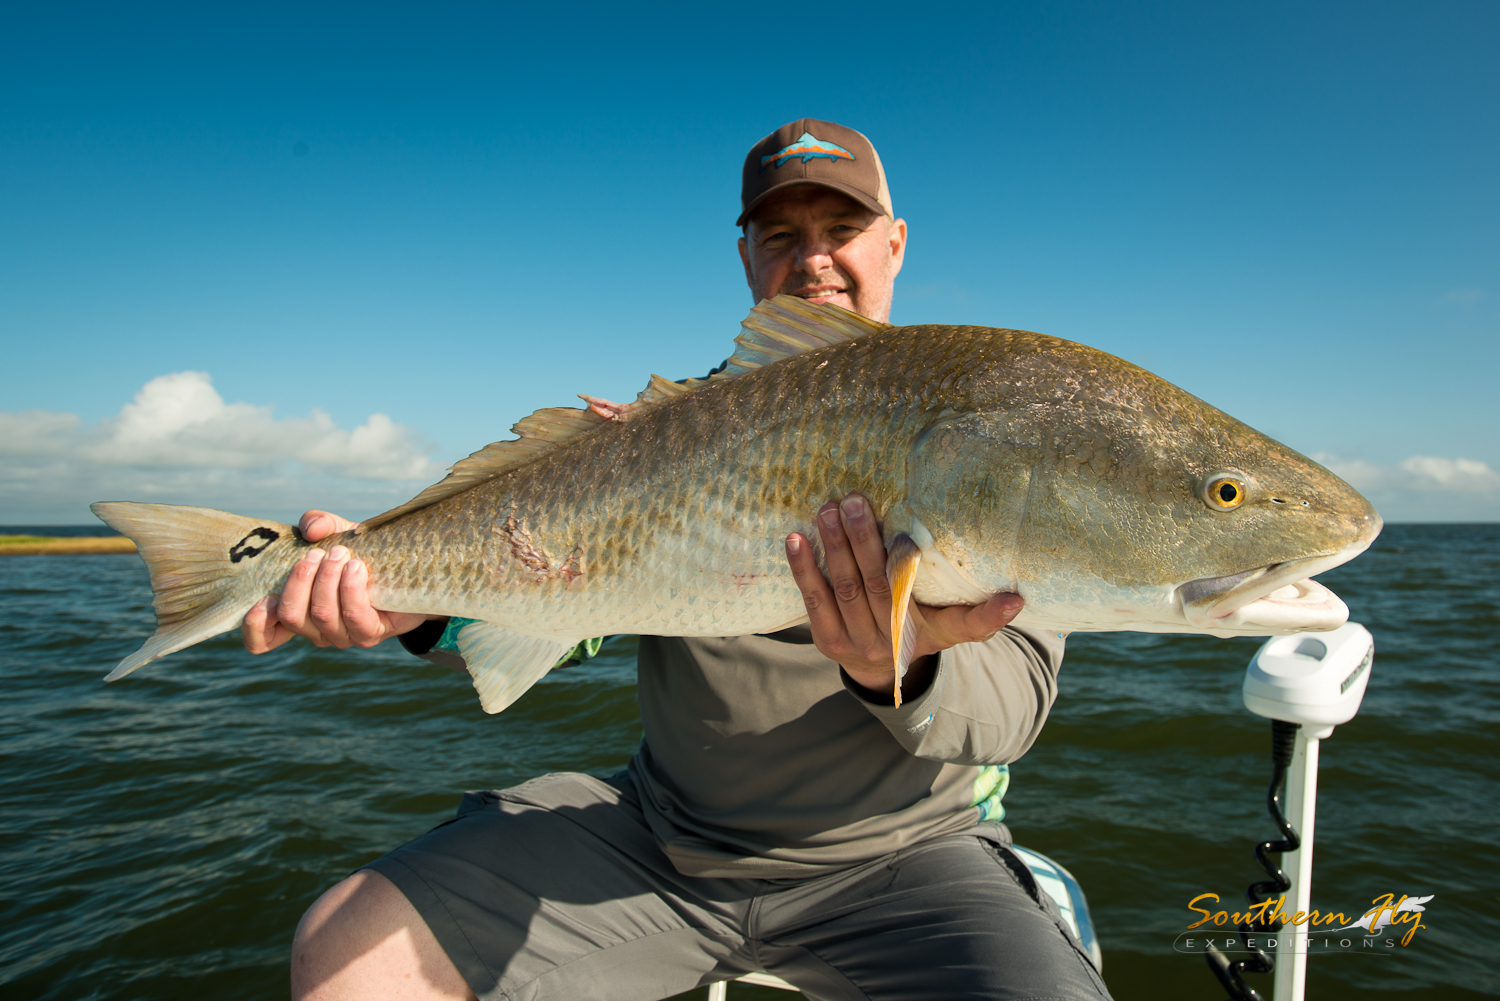 Fly Fishing Guide new orleans marsh area with Southern Fly Expeditions